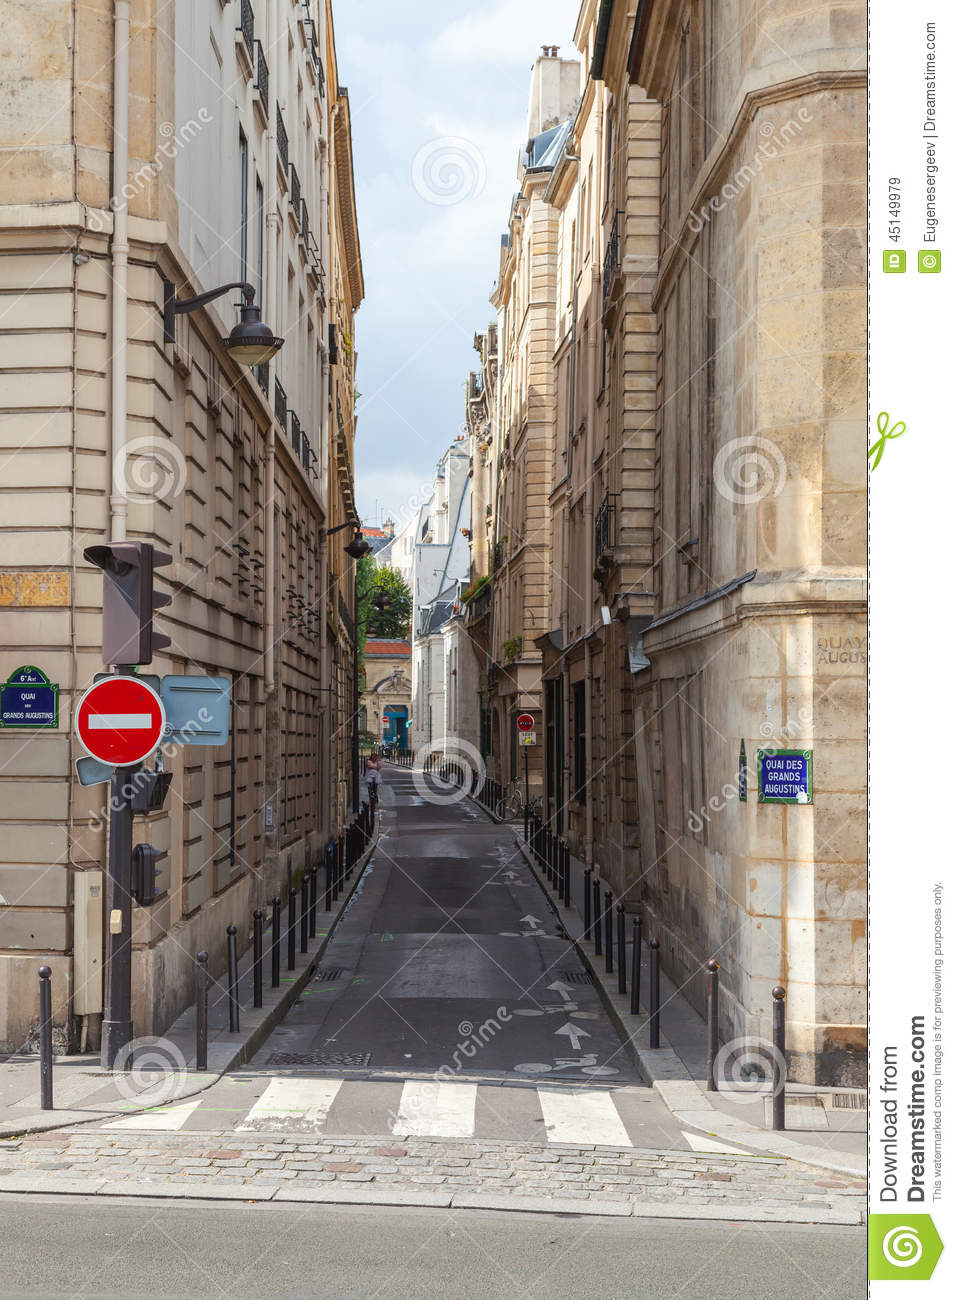 Narrow Street Perspective, Rue Seguier, Paris Stock Photo.